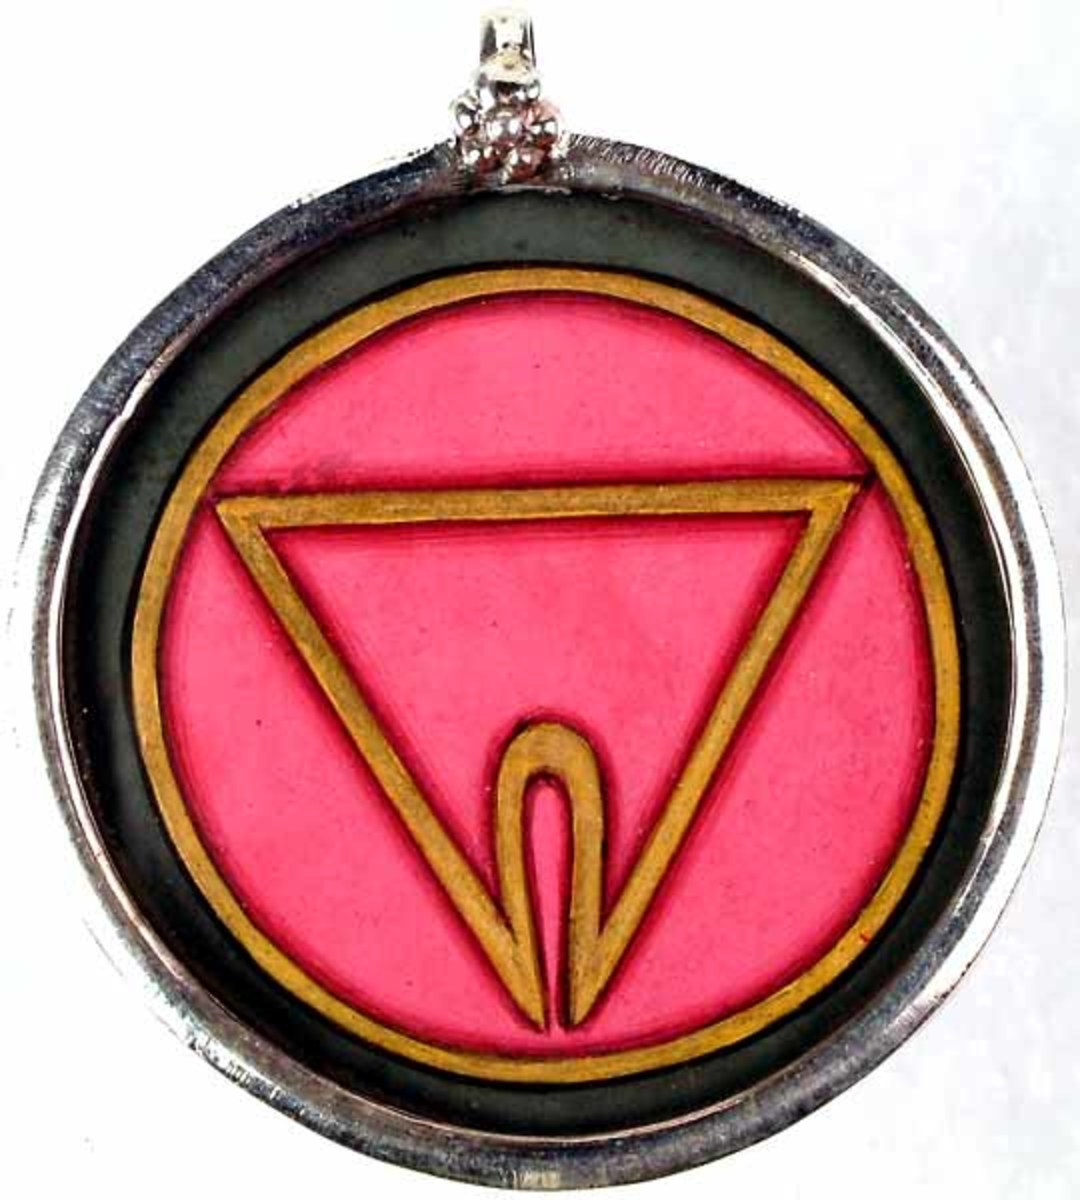 The yoni.  The symbol of the sacred aspect of the physical feminine in Tantric ritual.